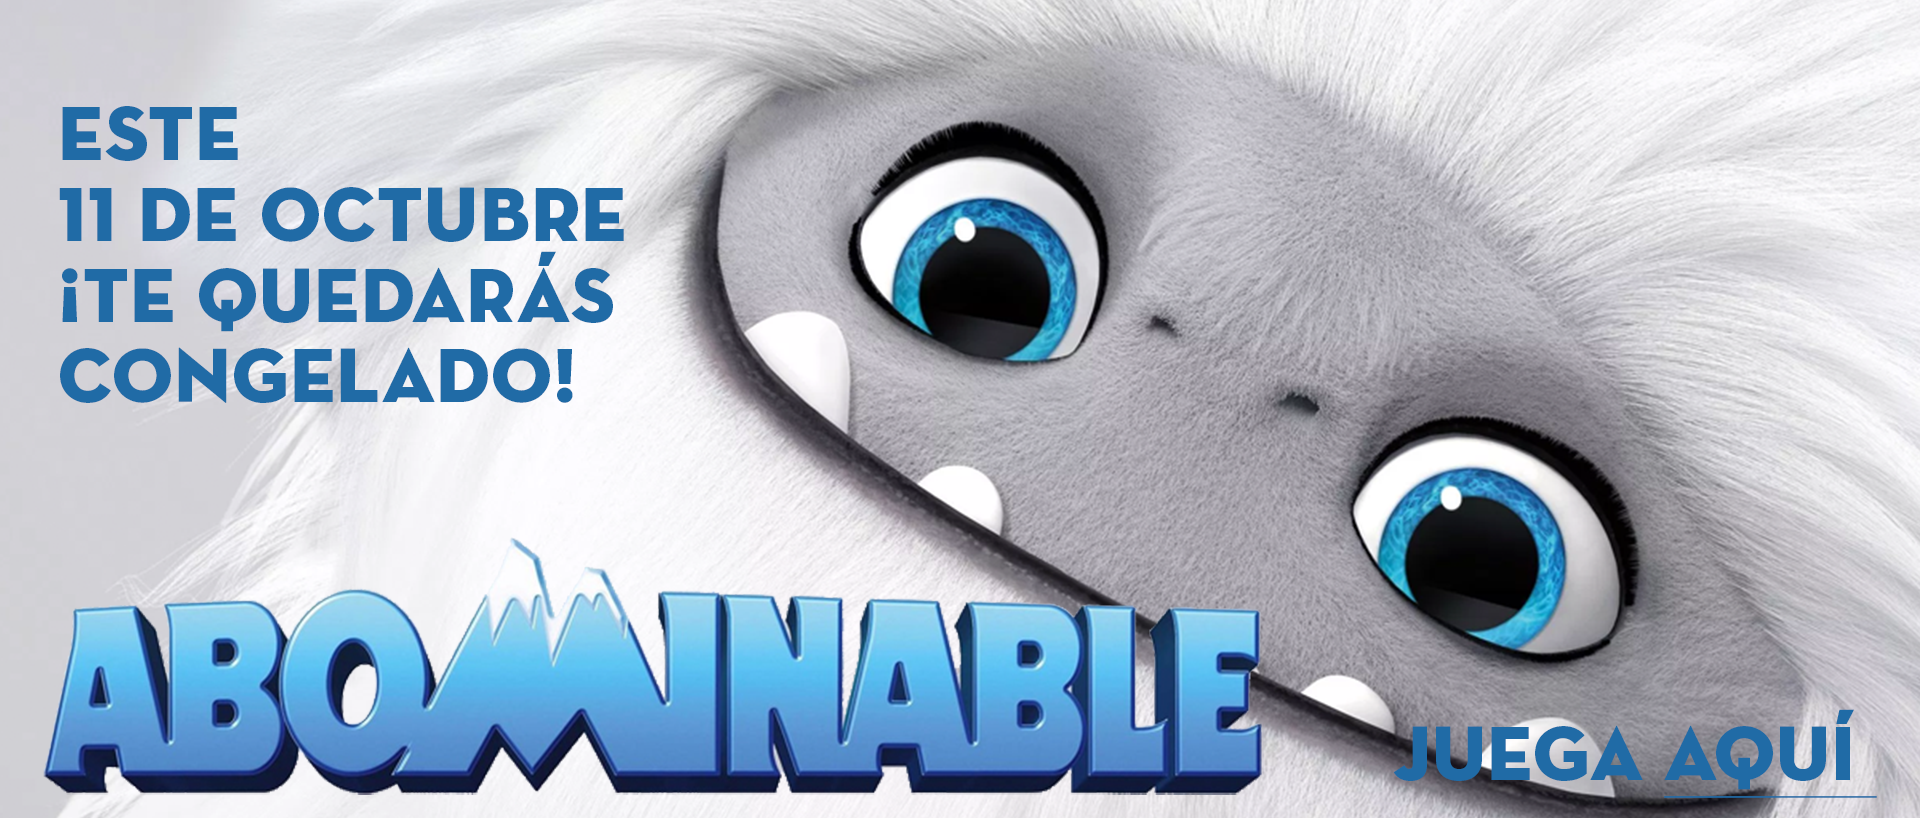 VG_Abominable1200x630.png